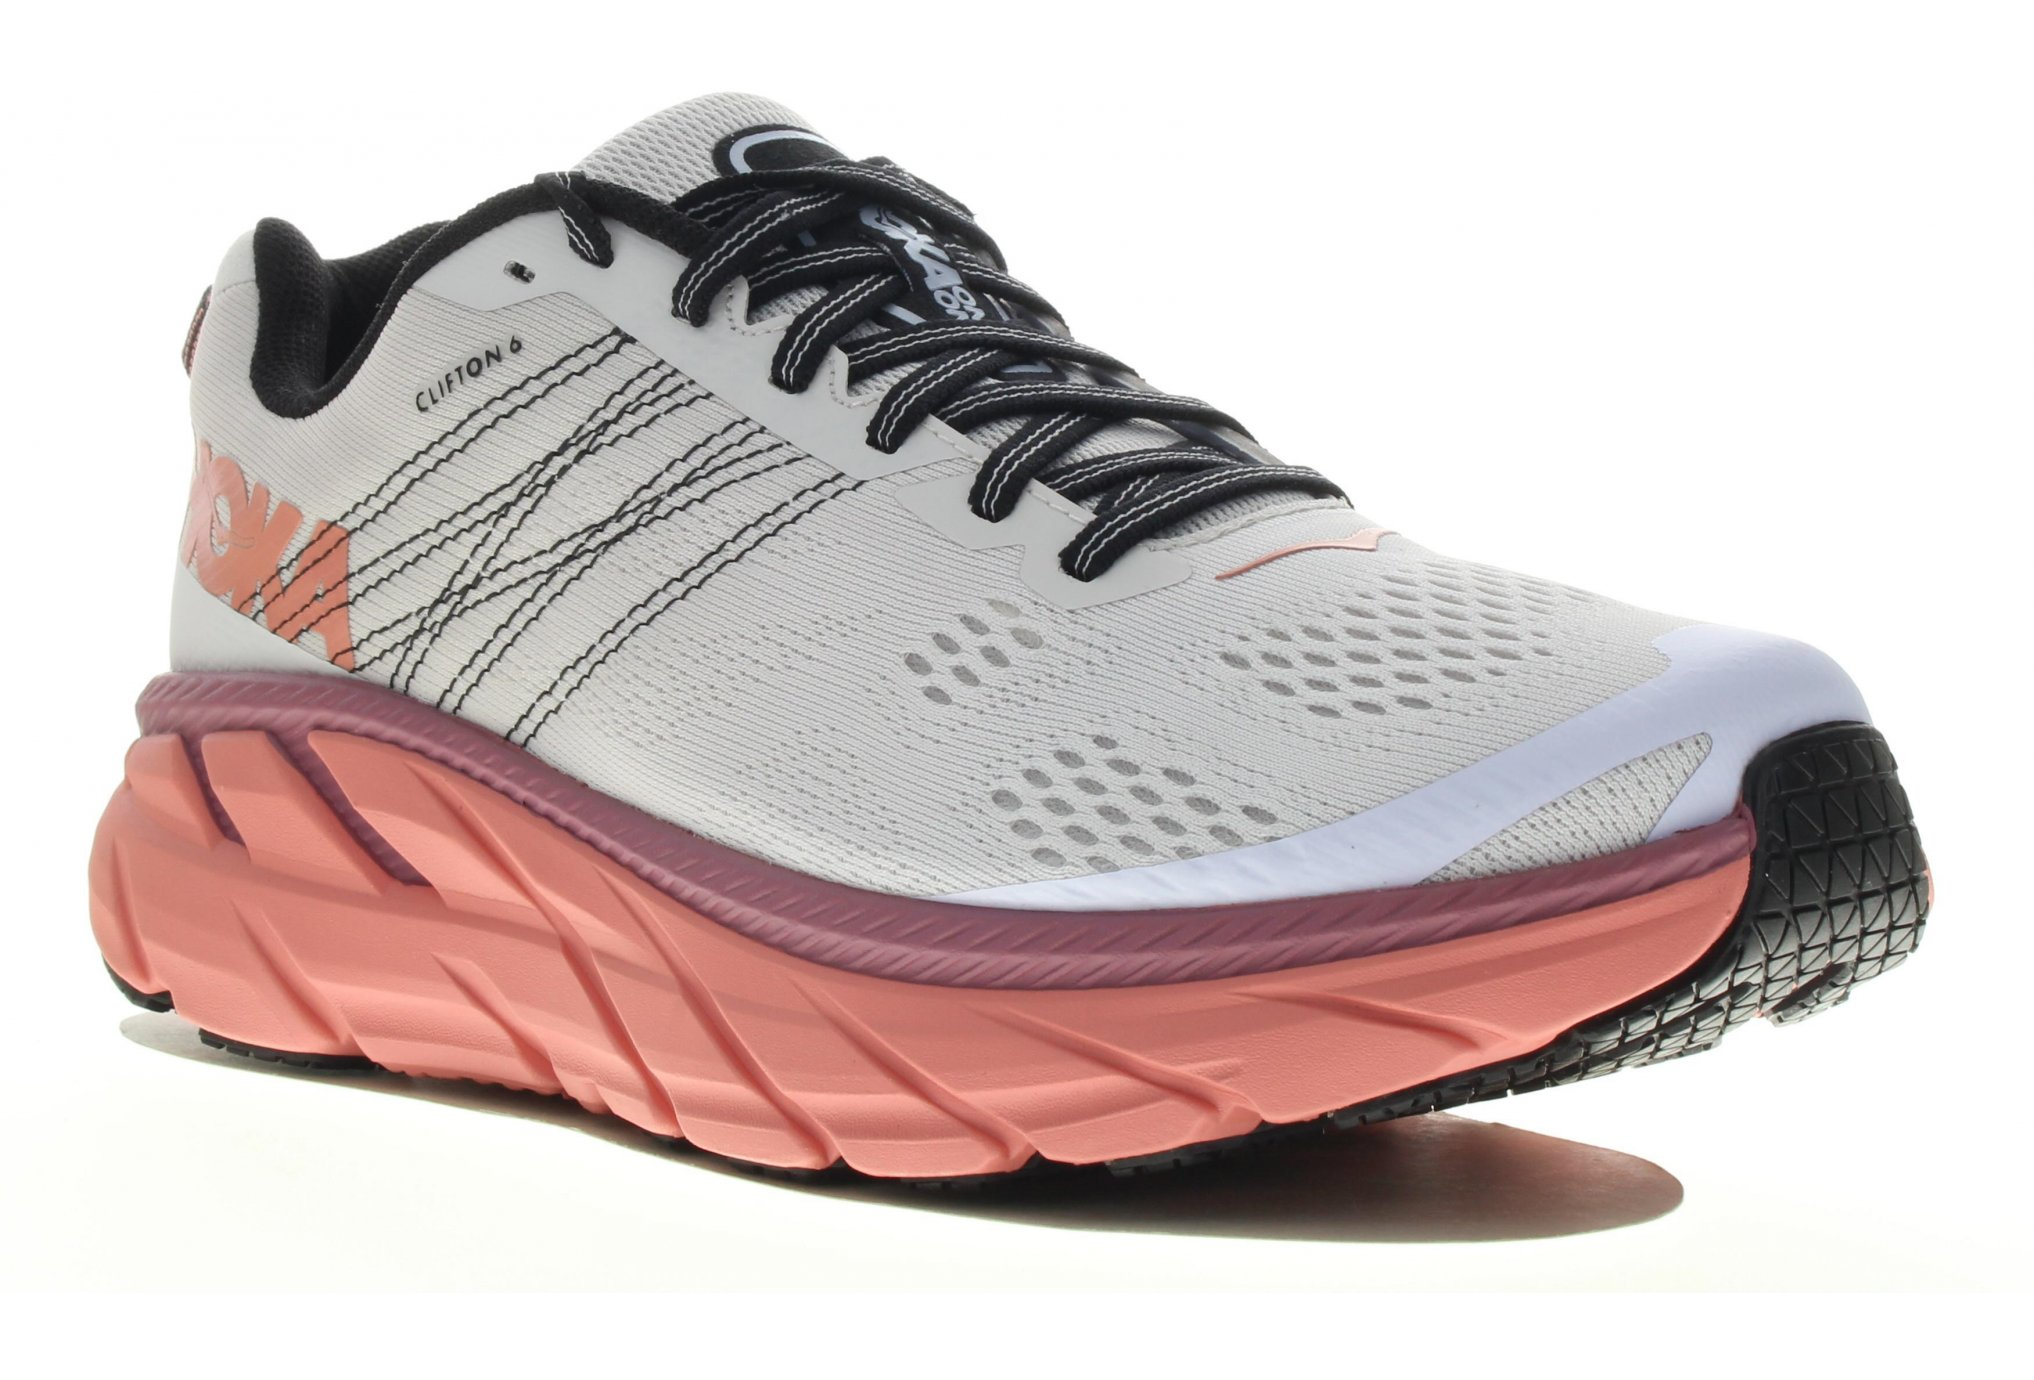 Hoka One One Clifton 6 Chaussures running femme